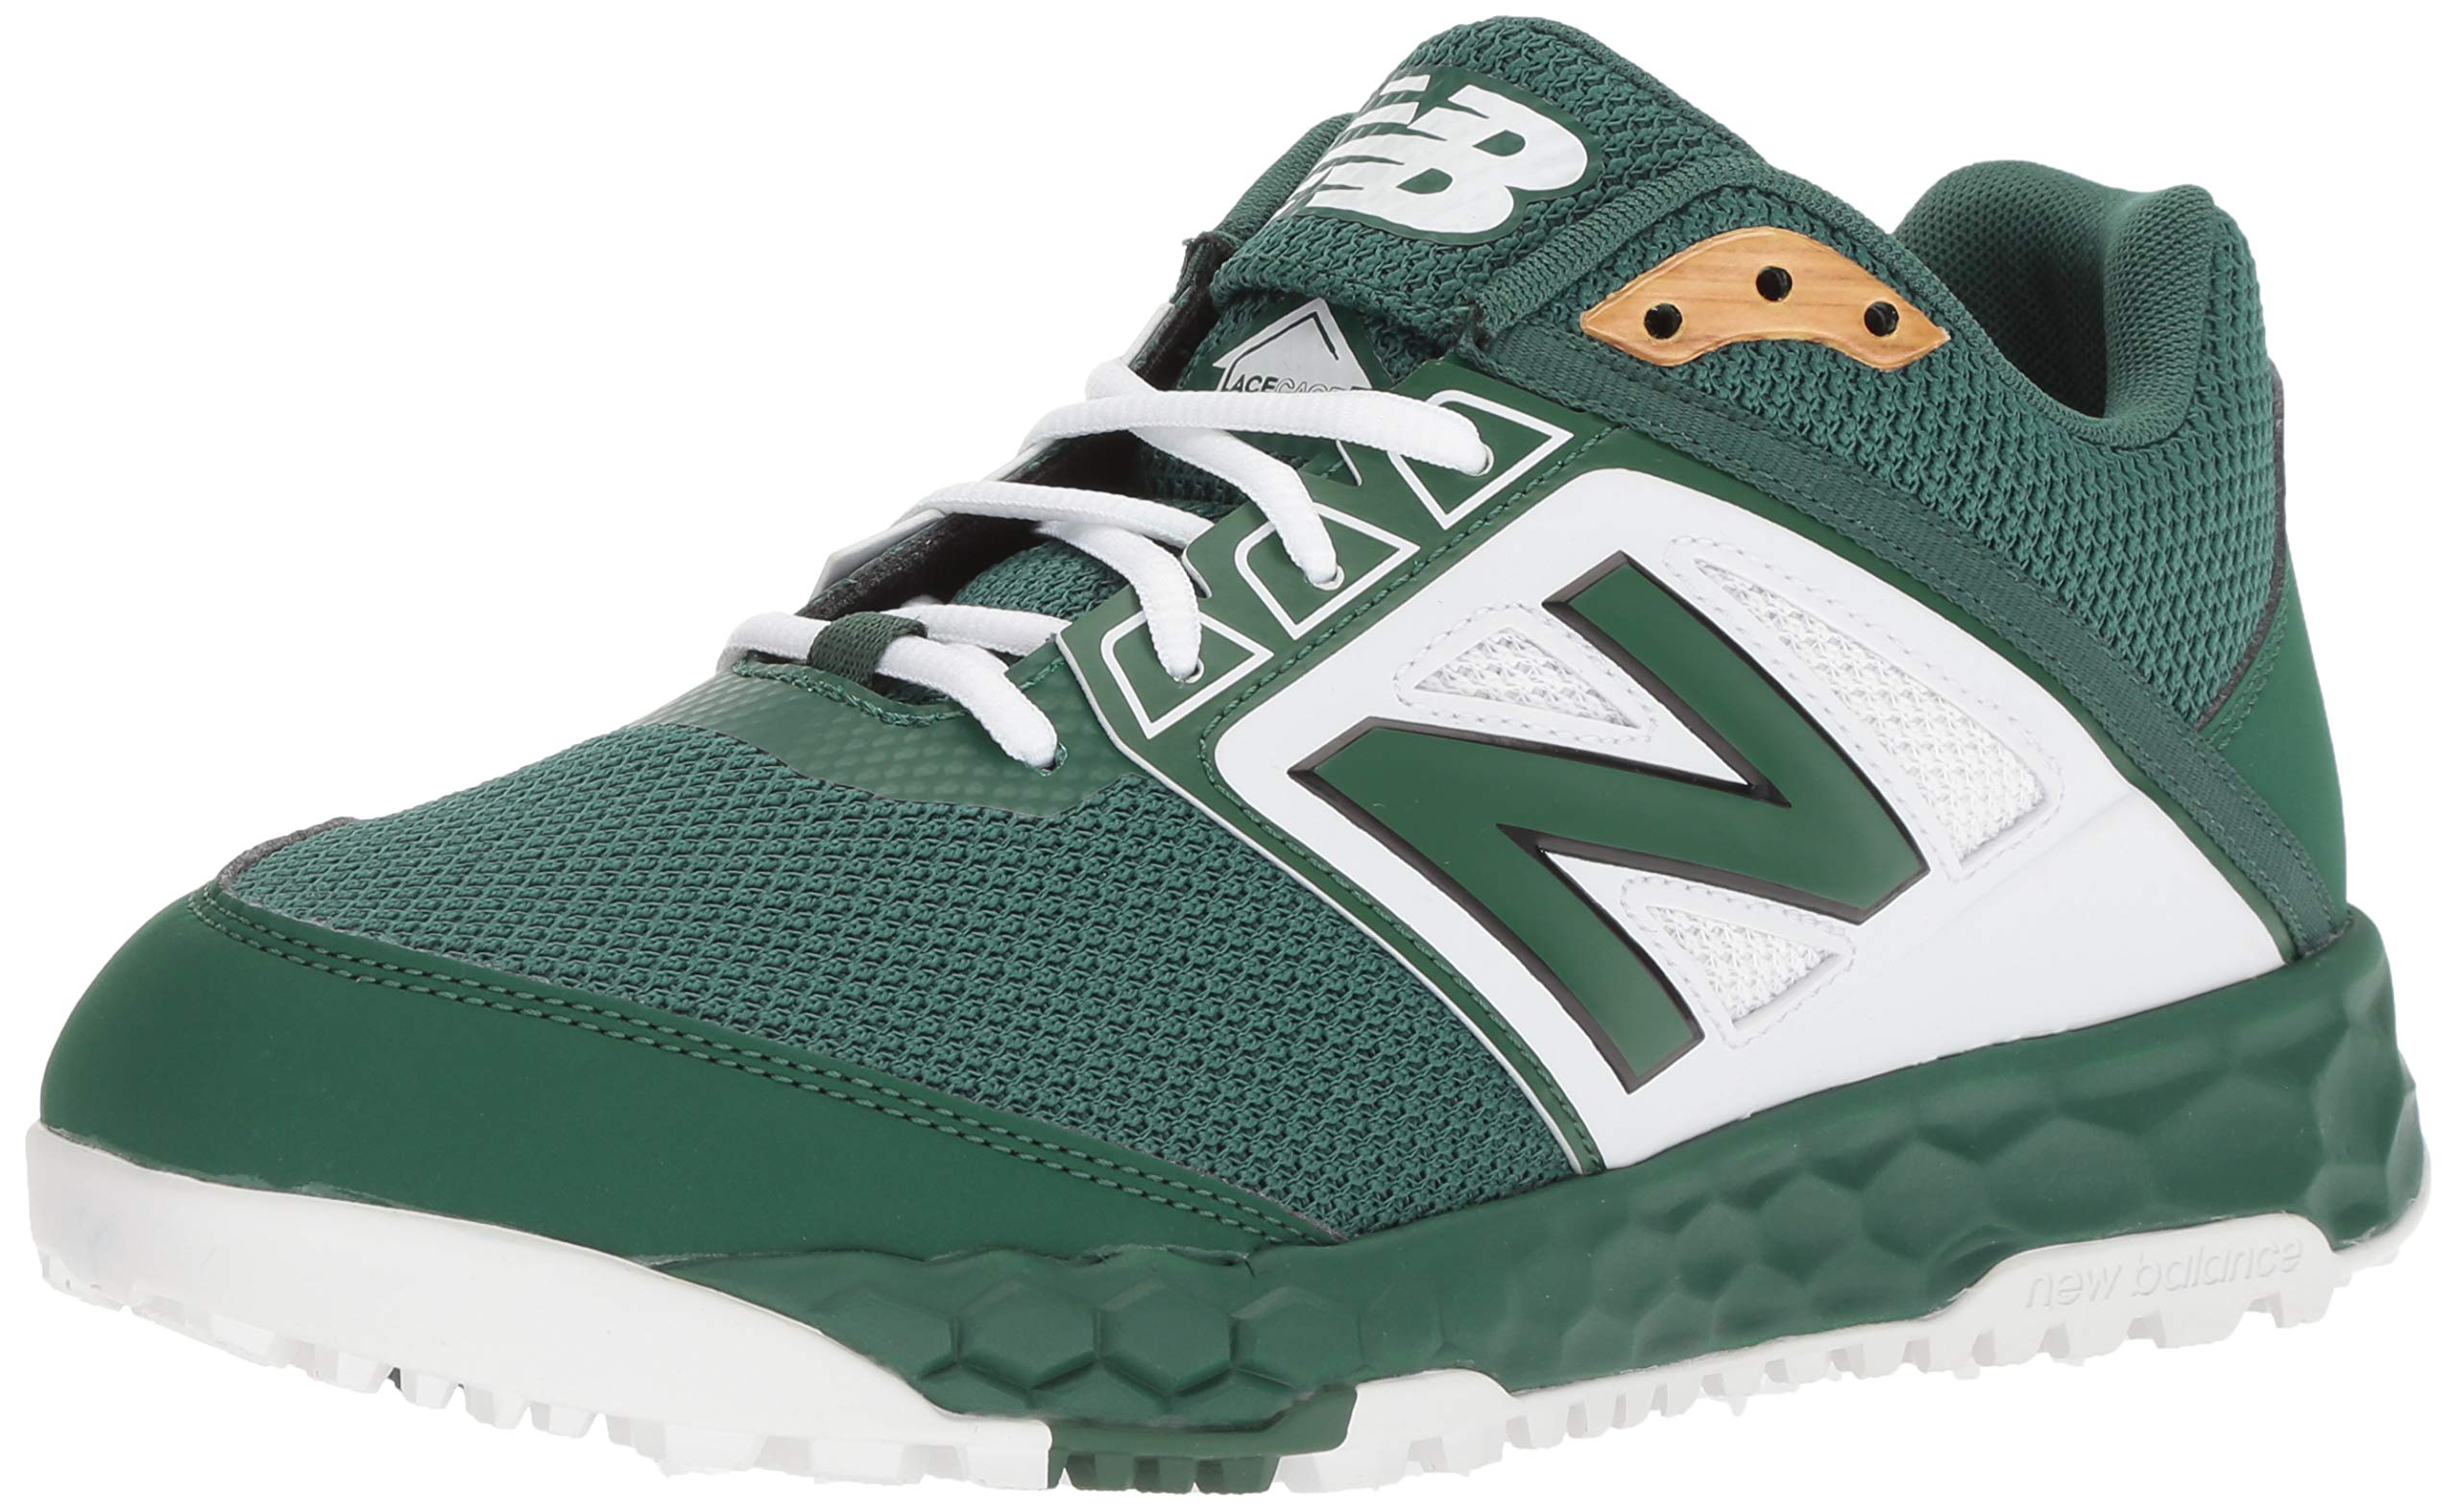 New Balance Men's 3000v4 Turf Baseball Shoe, Green/White, 5 D US